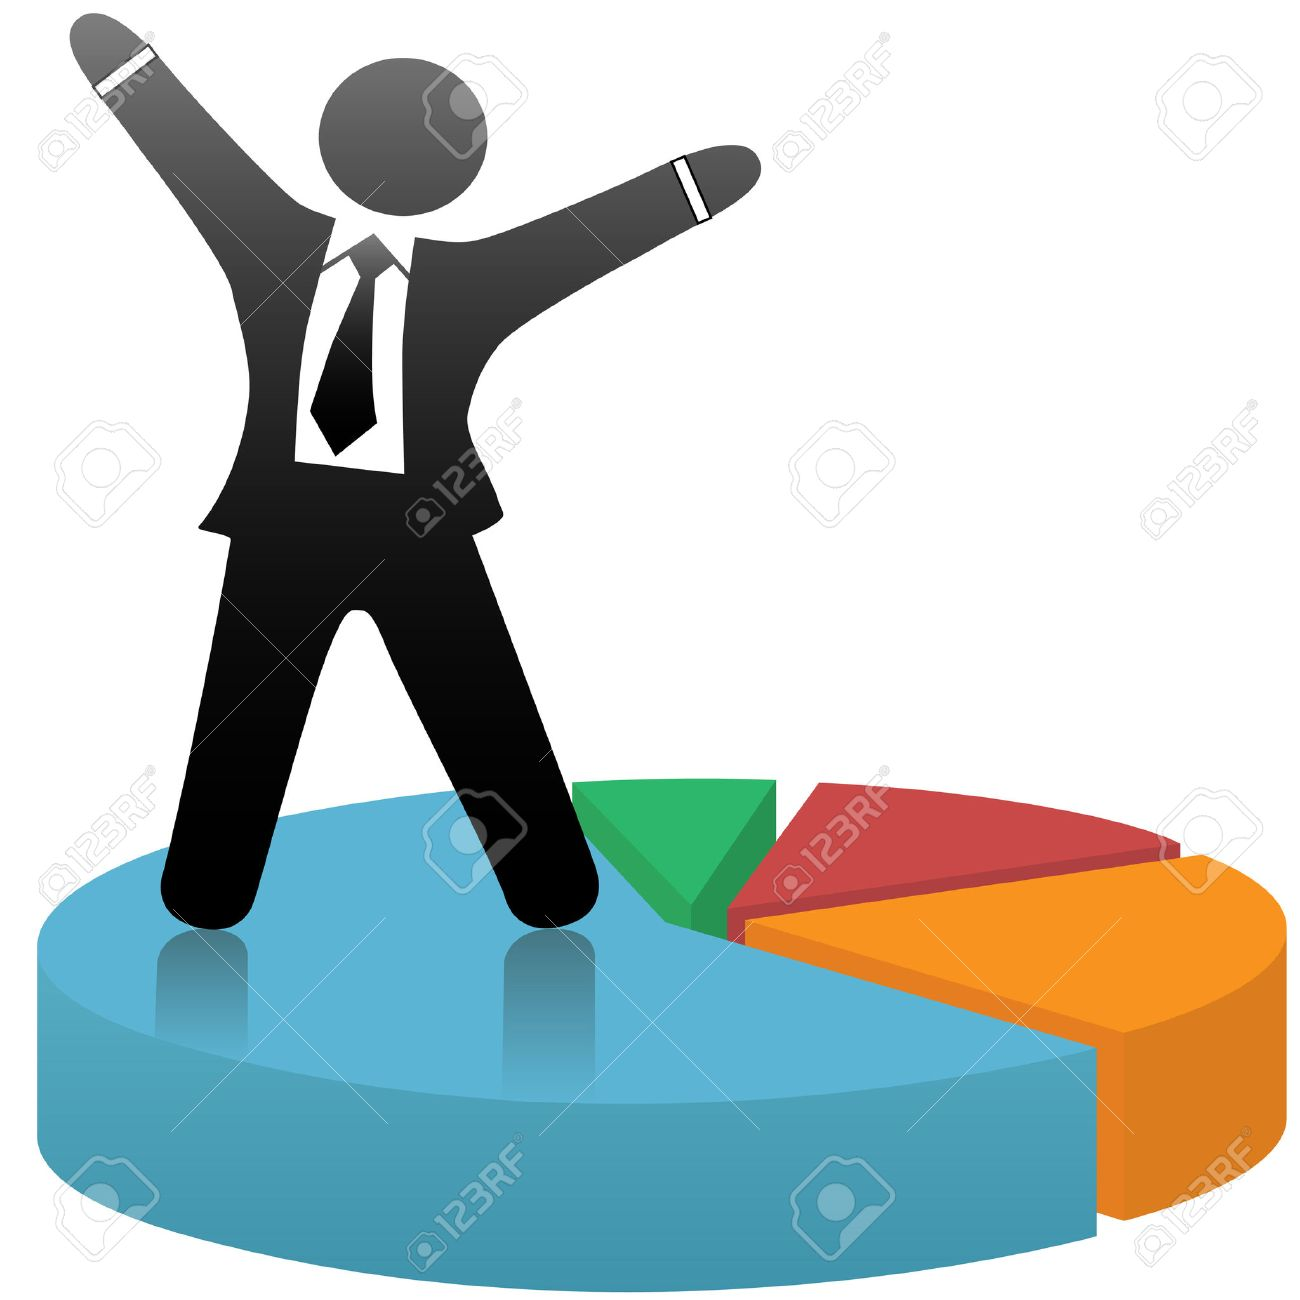 A symbol business man celebrates a financial market share success standing on a colorful pie chart. - 3410320